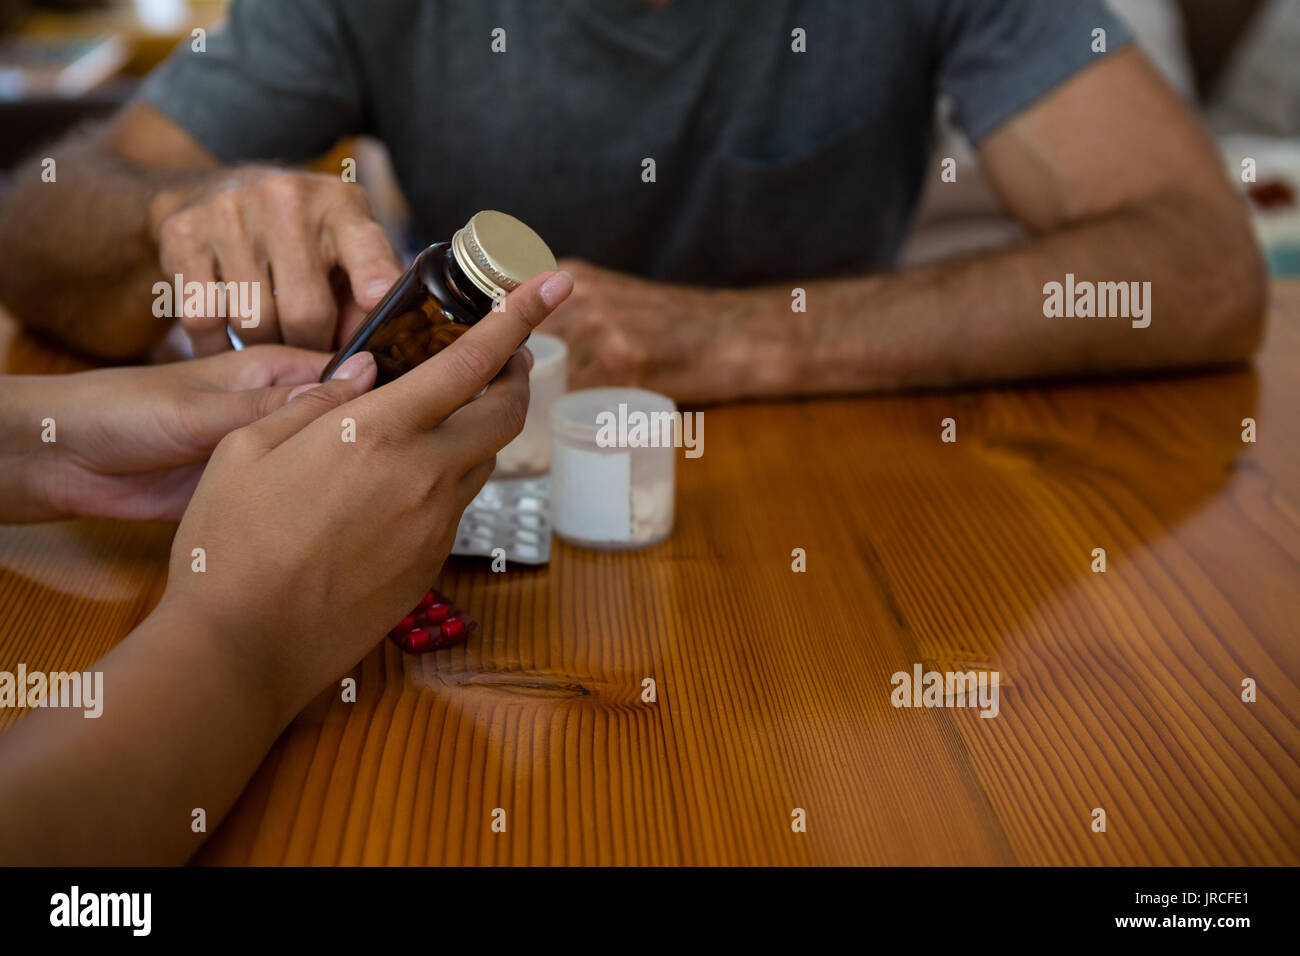 Midsection of doctor guiding senior man in taking medicine at table - Stock Image